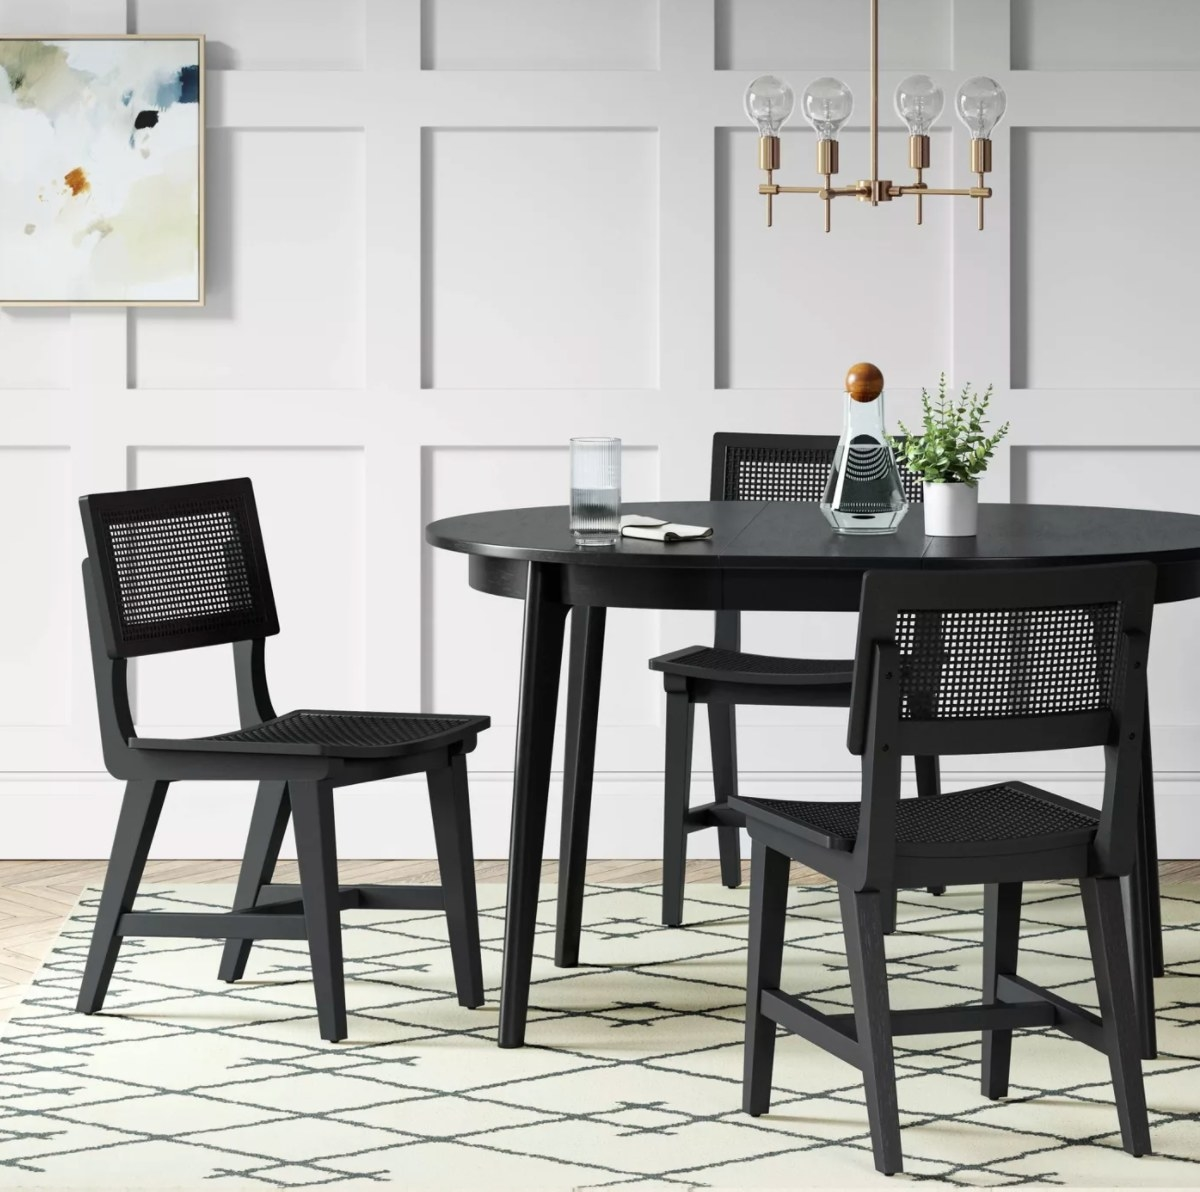 The midcentury round extendible table with matching chairs in black